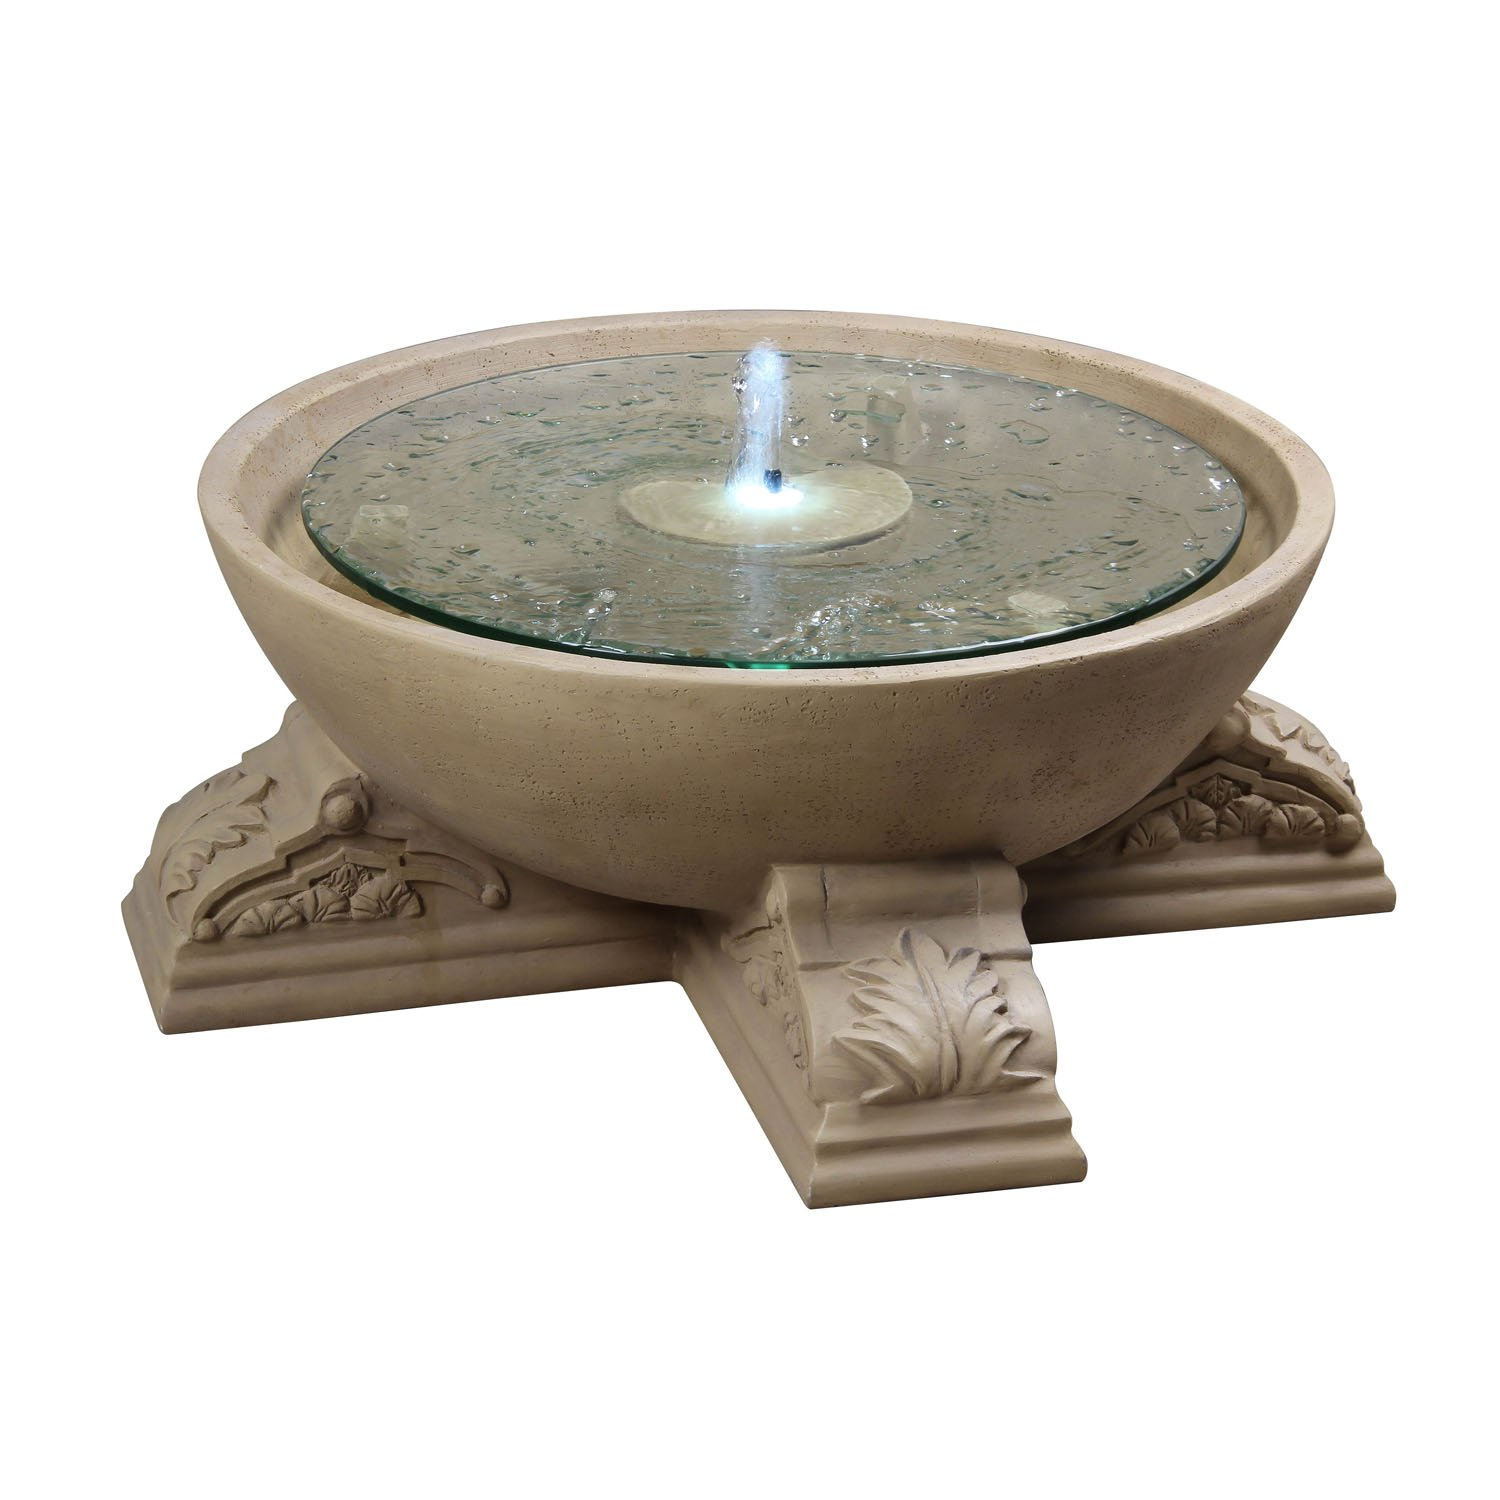 Kenroy Home Palazzo Outdoor Floor Fountain, Sandstone by Kenroy Home